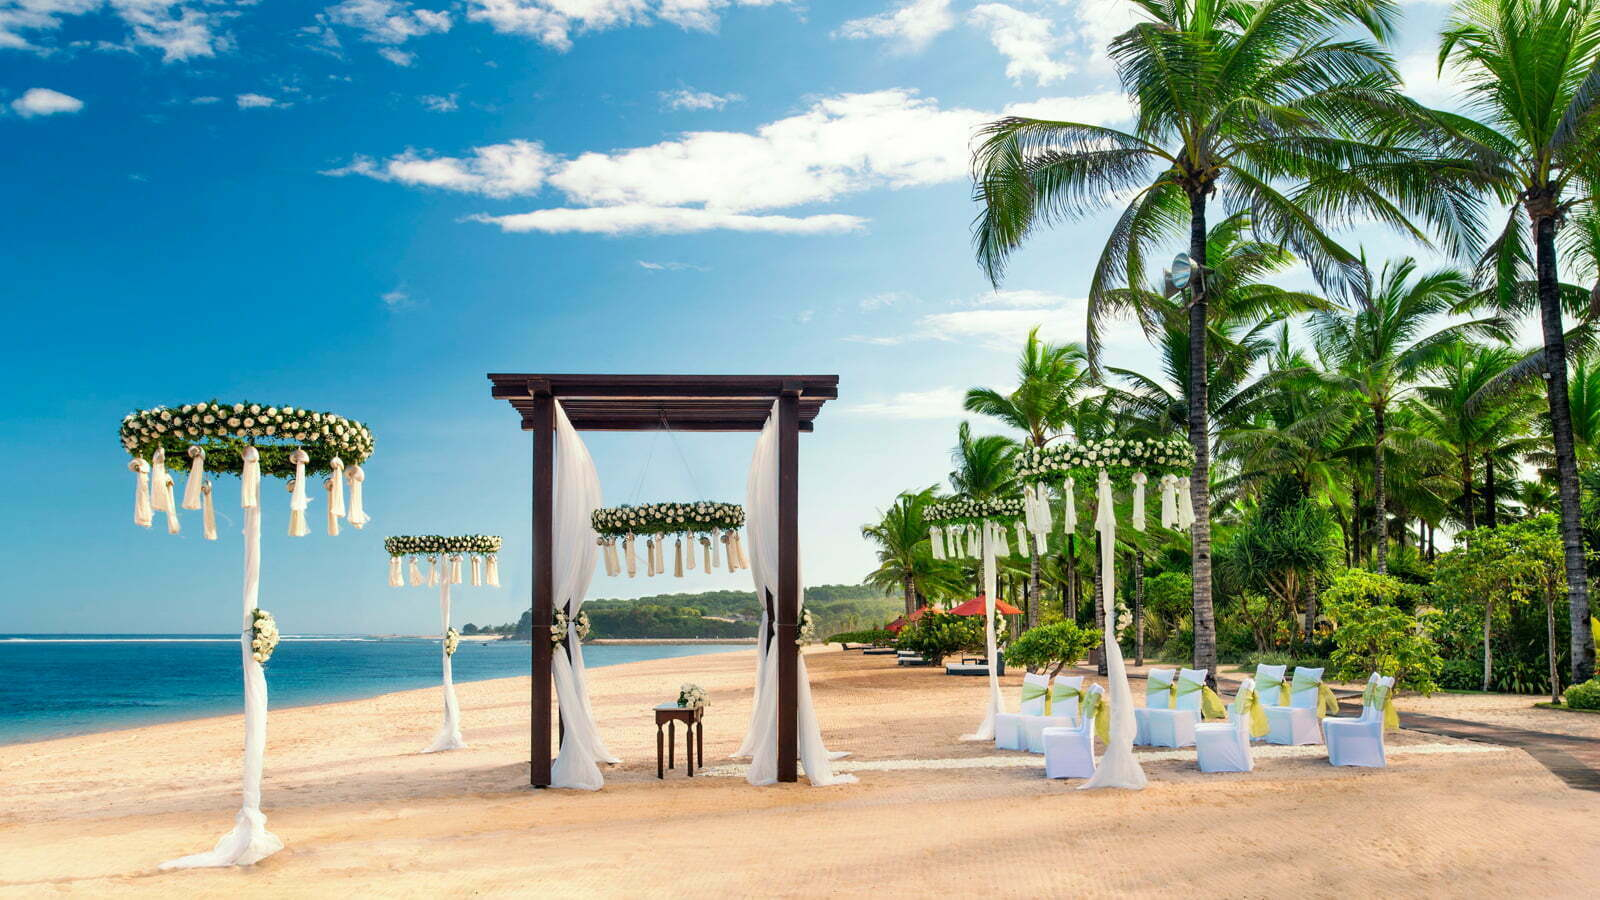 Destination wedding in bali the island of gods for Bali mariage location